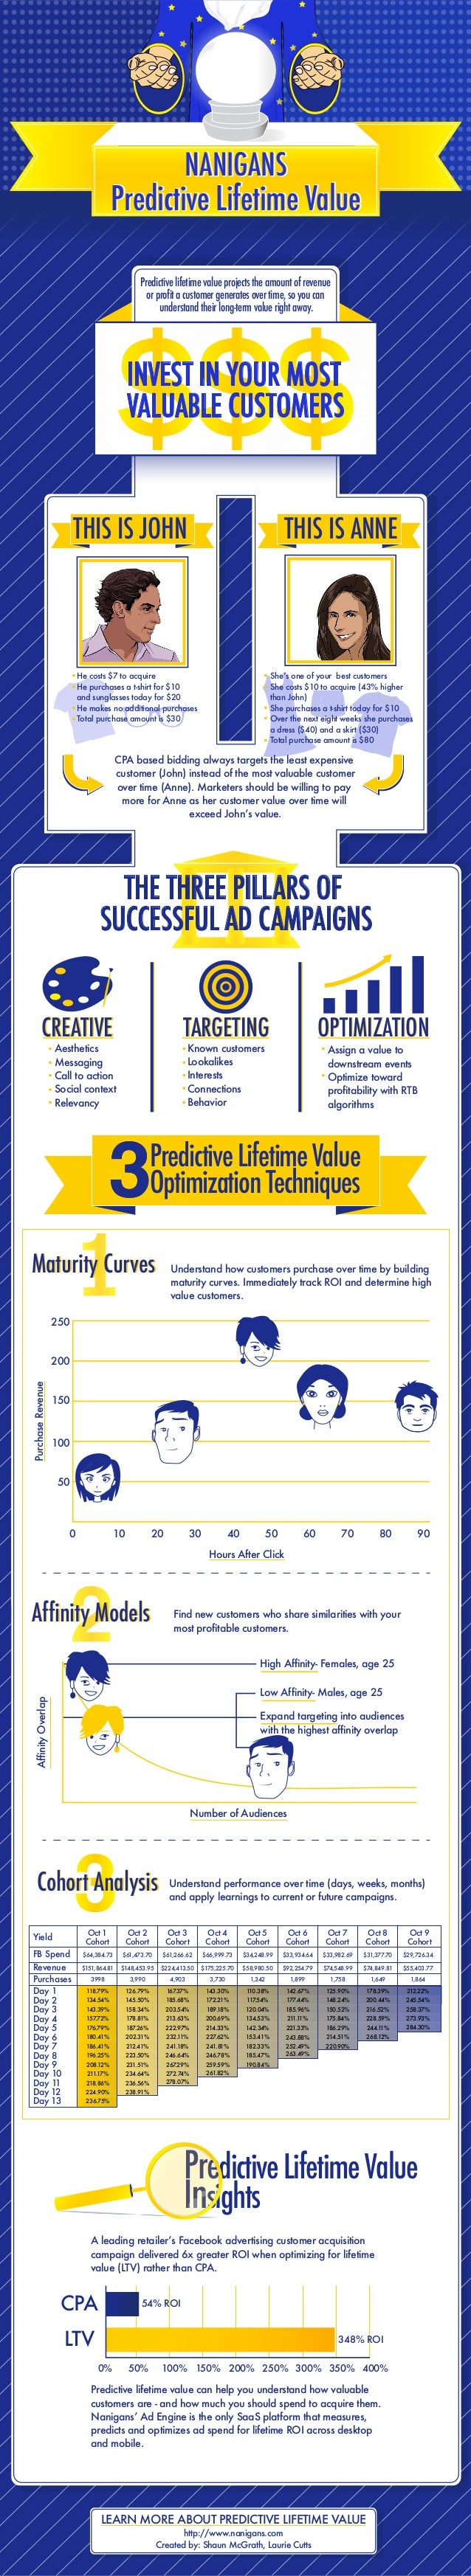 Maturity CurvesMaturity Curves Predictive Lifetime Value NANIGANS Predictive Lifetime Value NANIGANS INVEST IN YOUR MOST V...